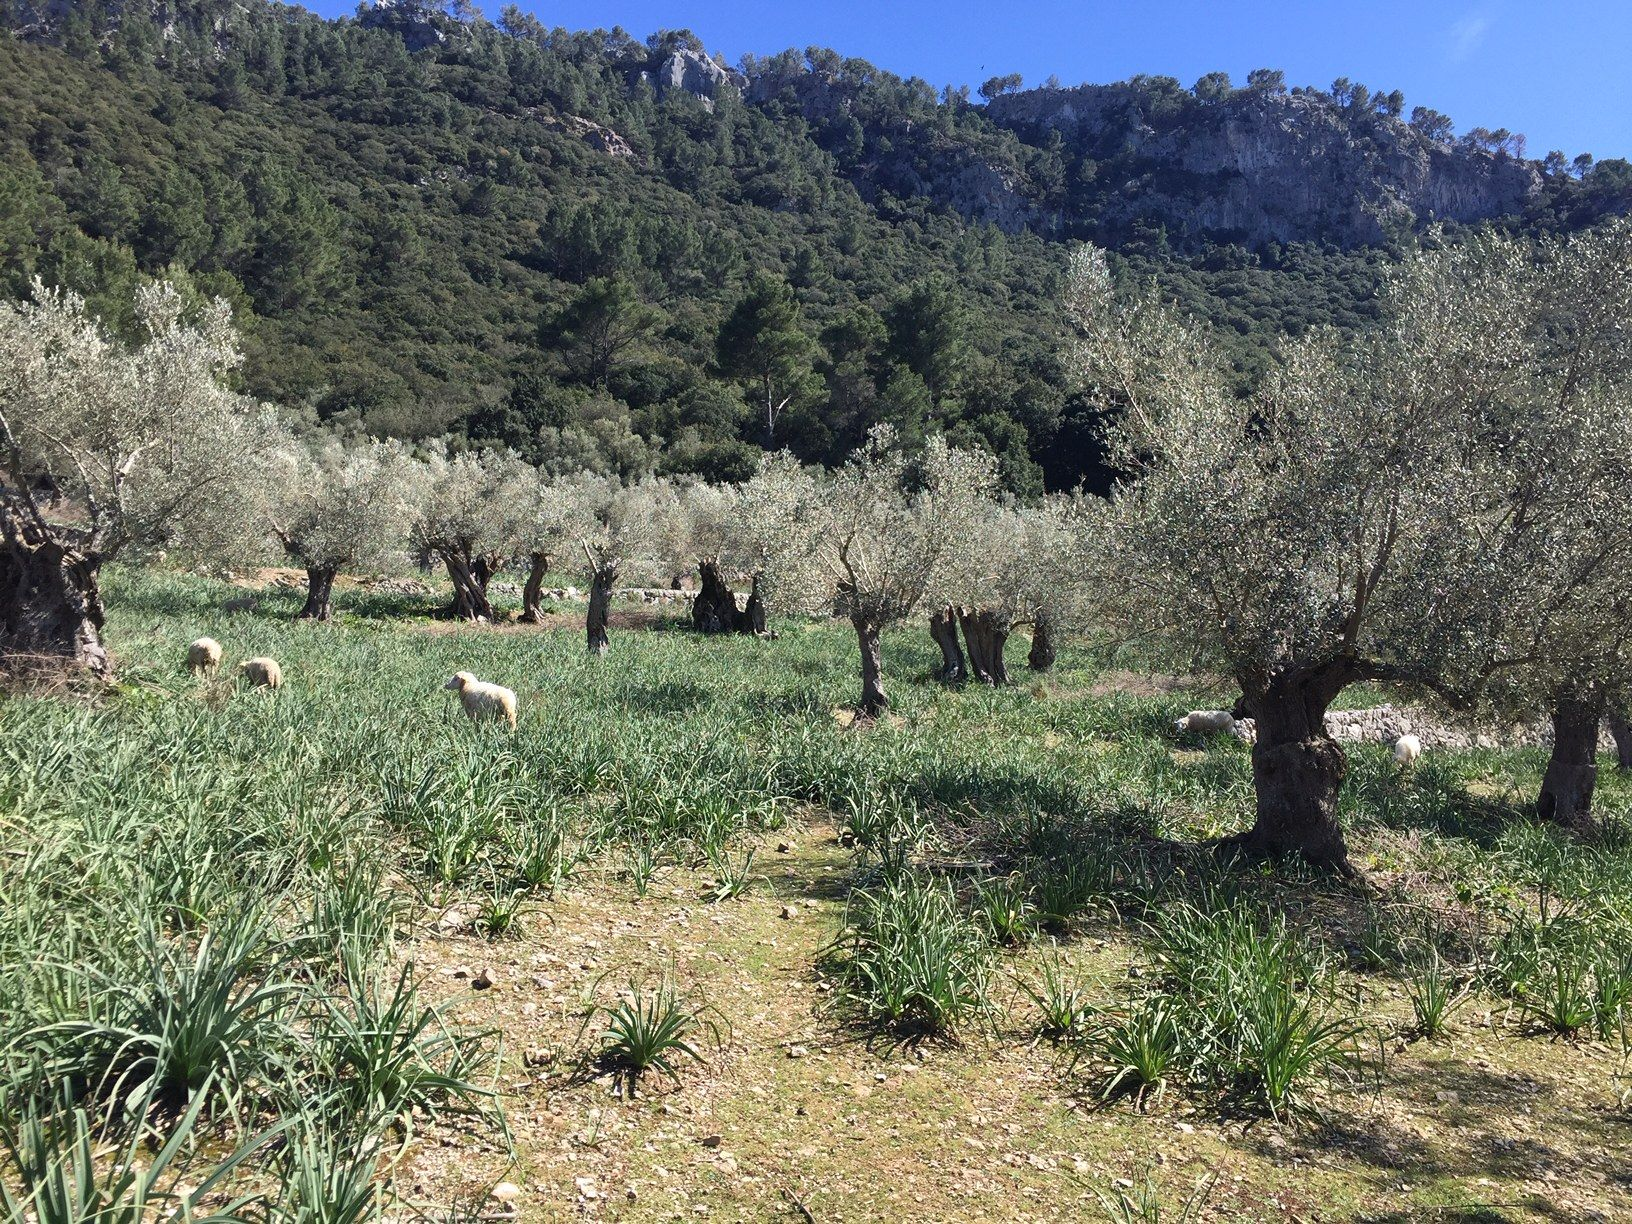 Short walk through olive trees